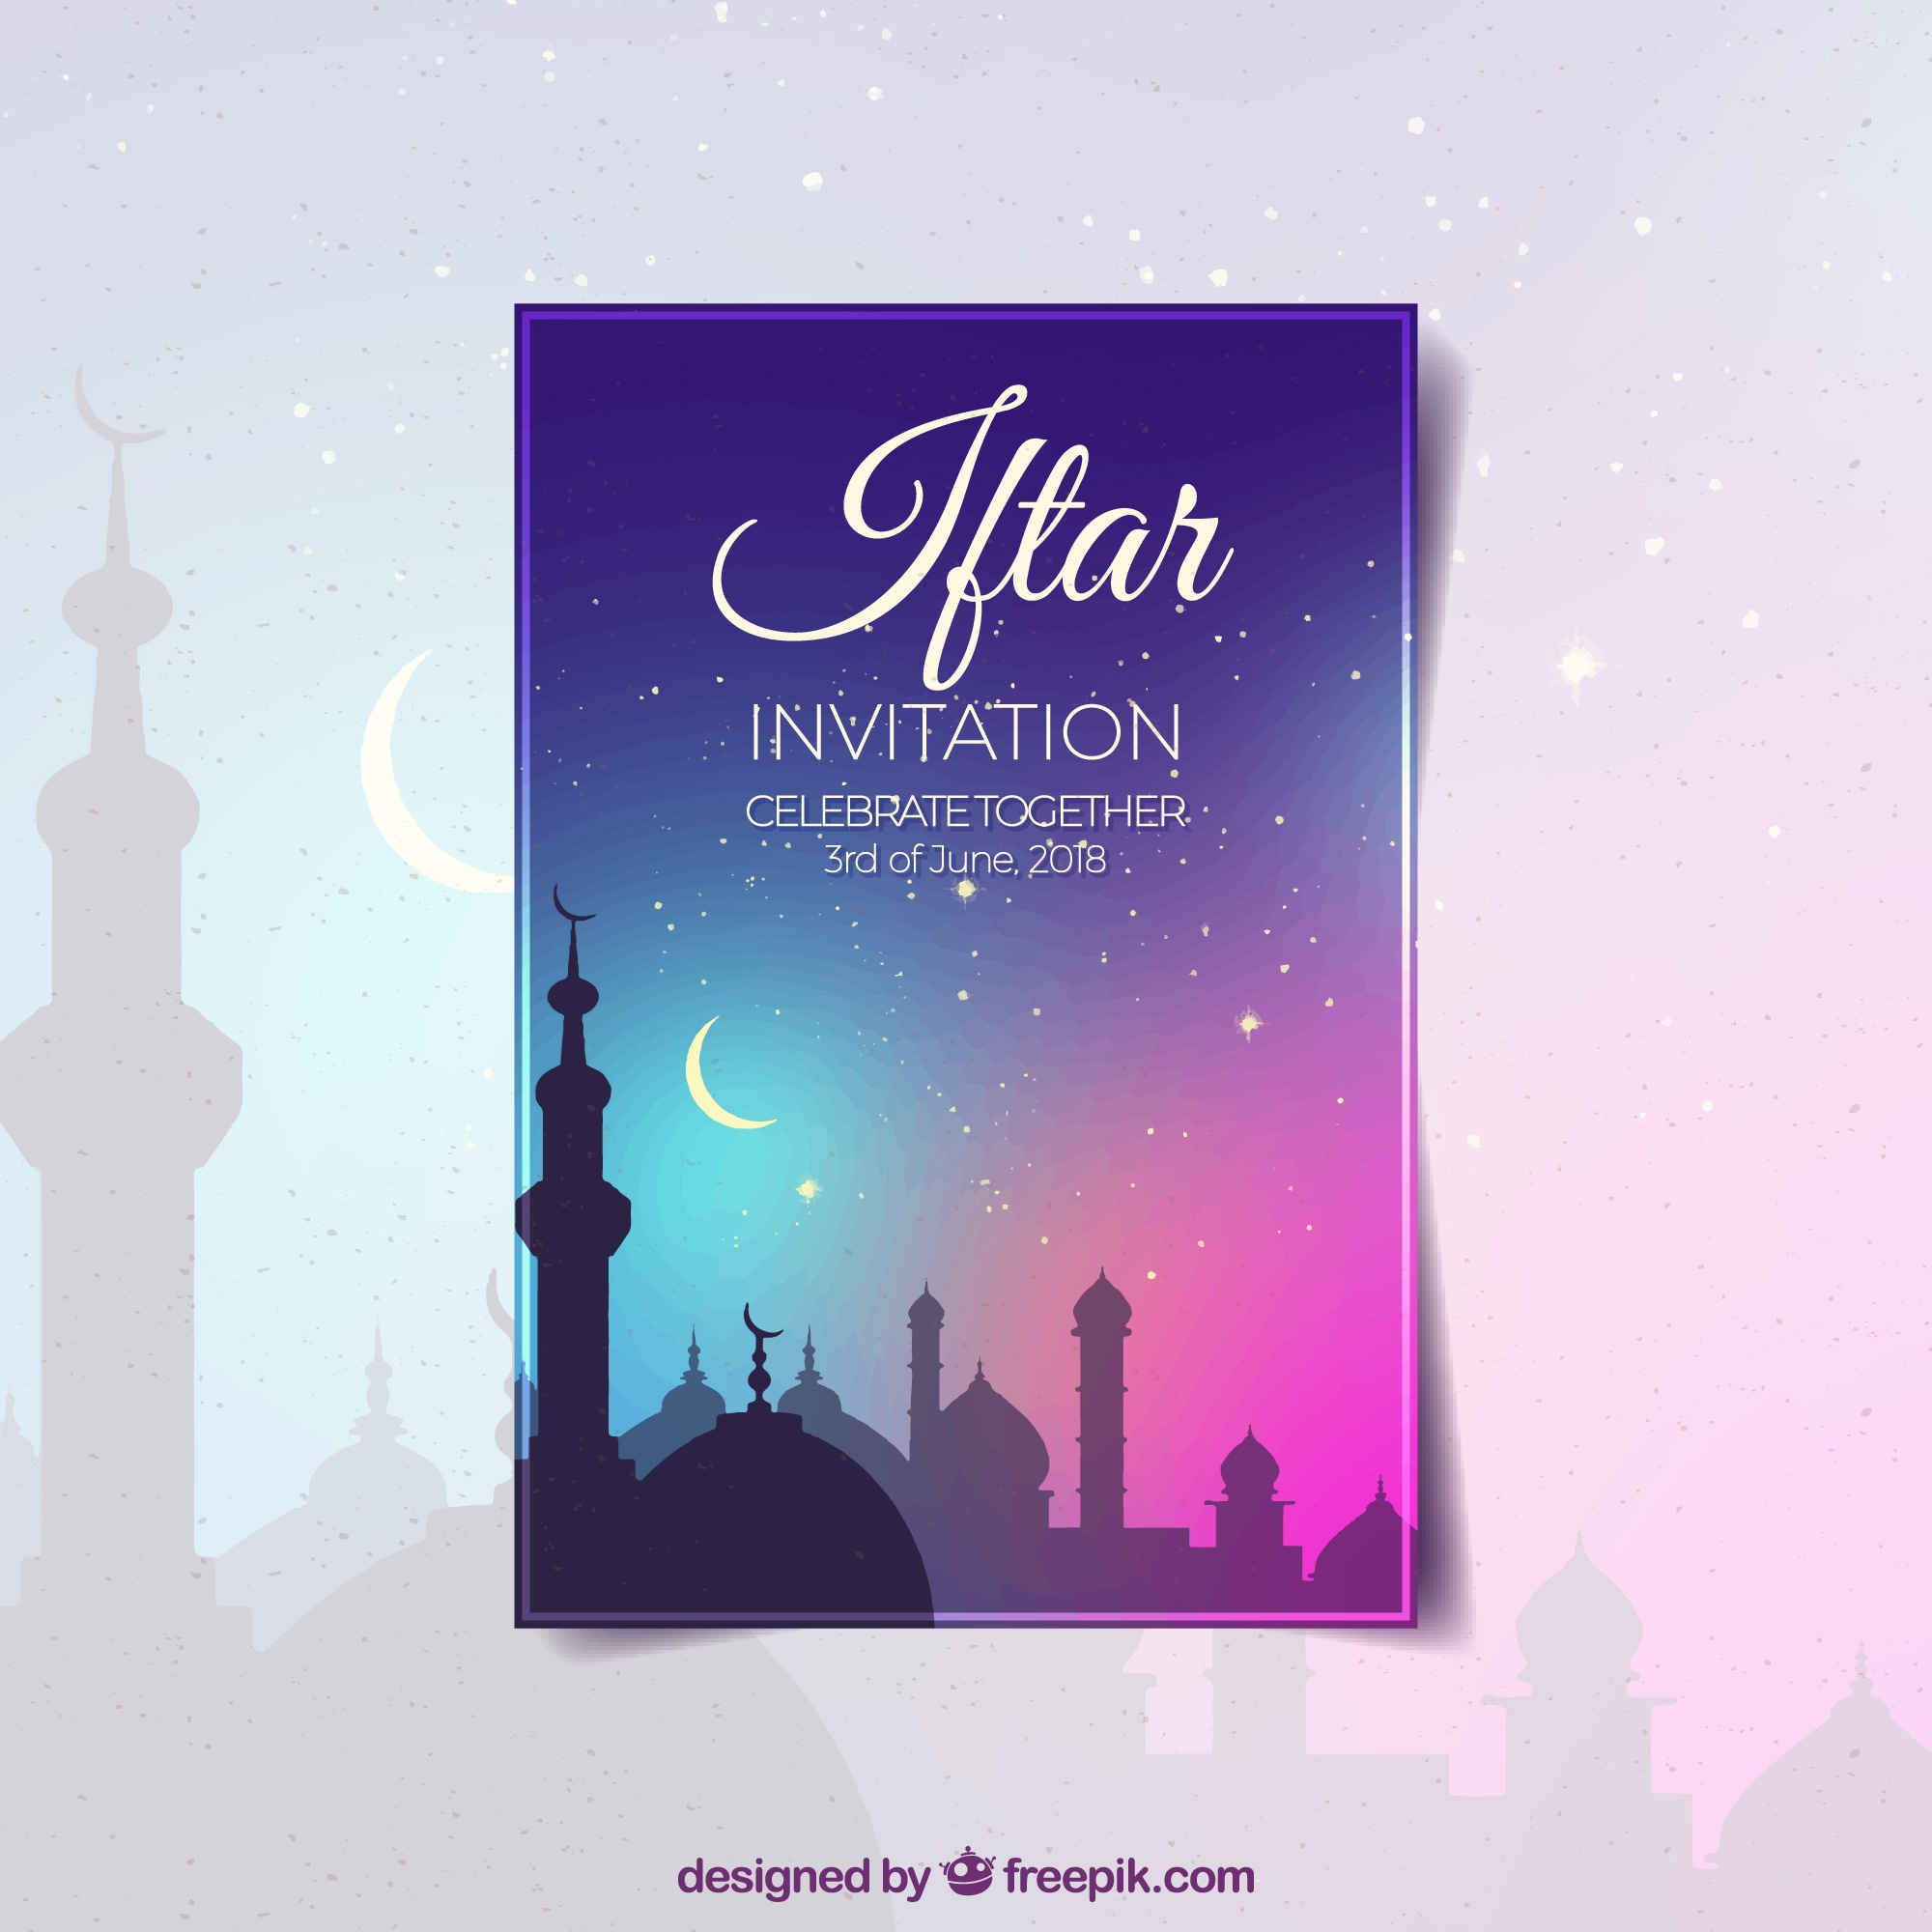 Iftar party invitation with gradient sky